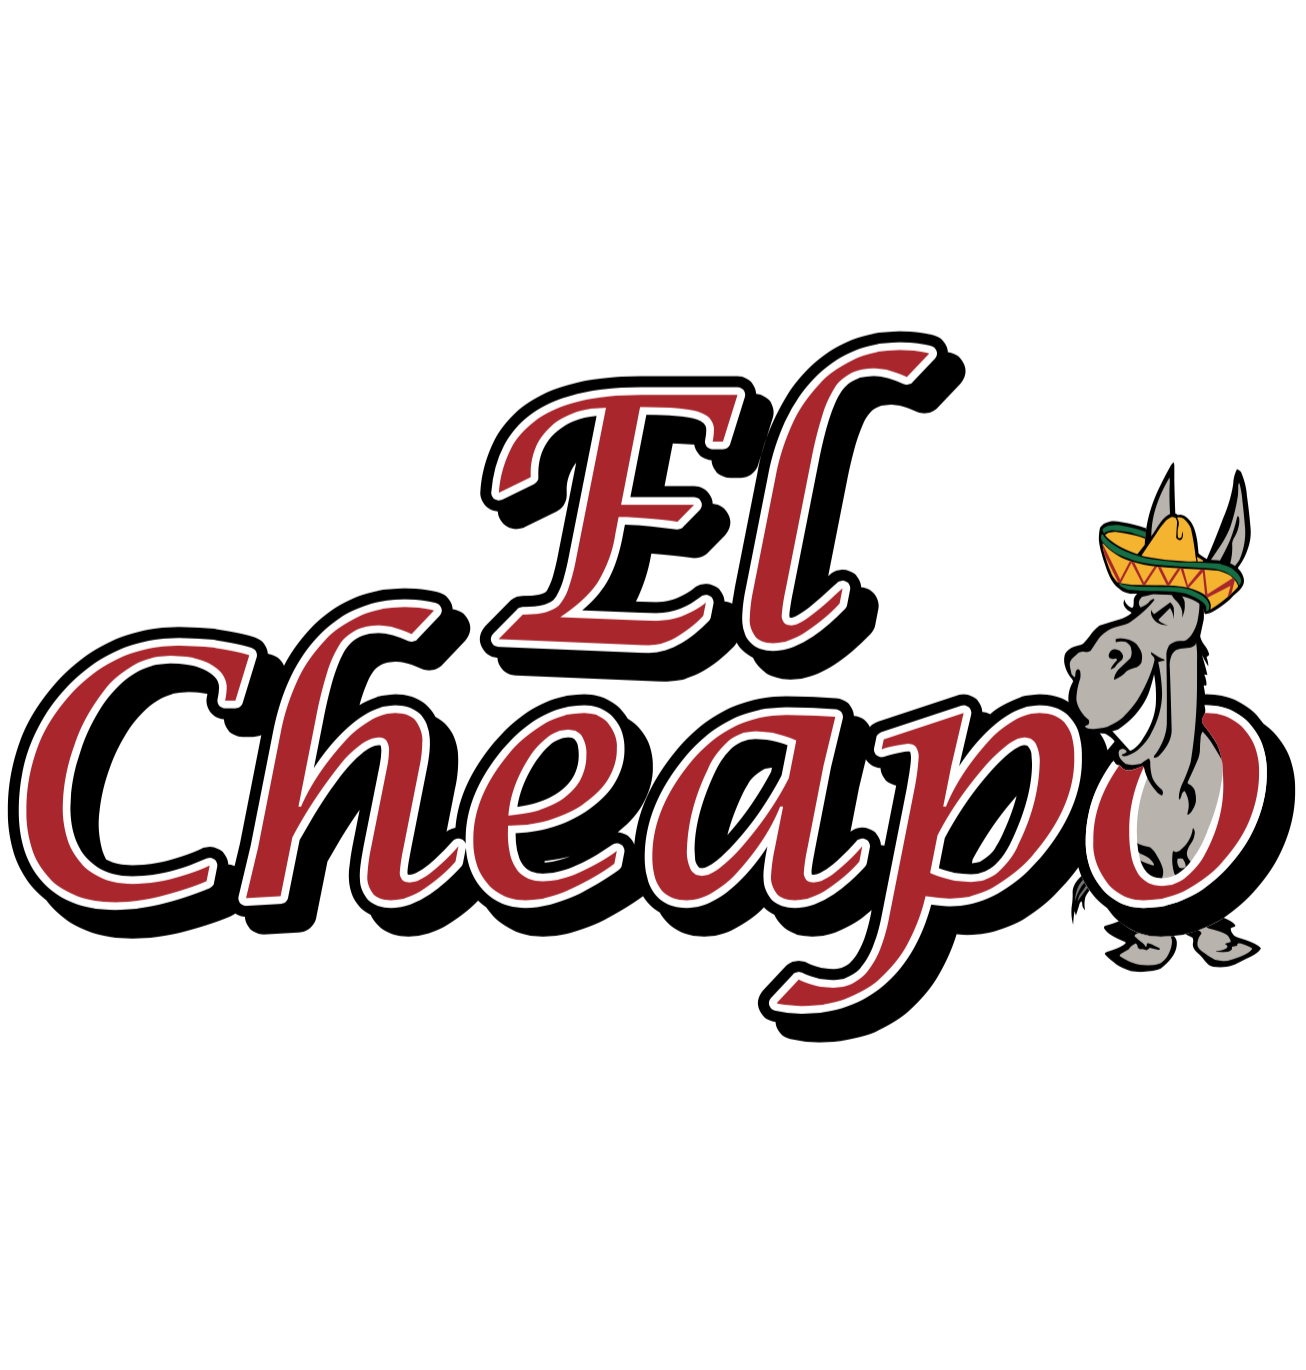 Drawing Sheet for EL CHEAPO logo 2